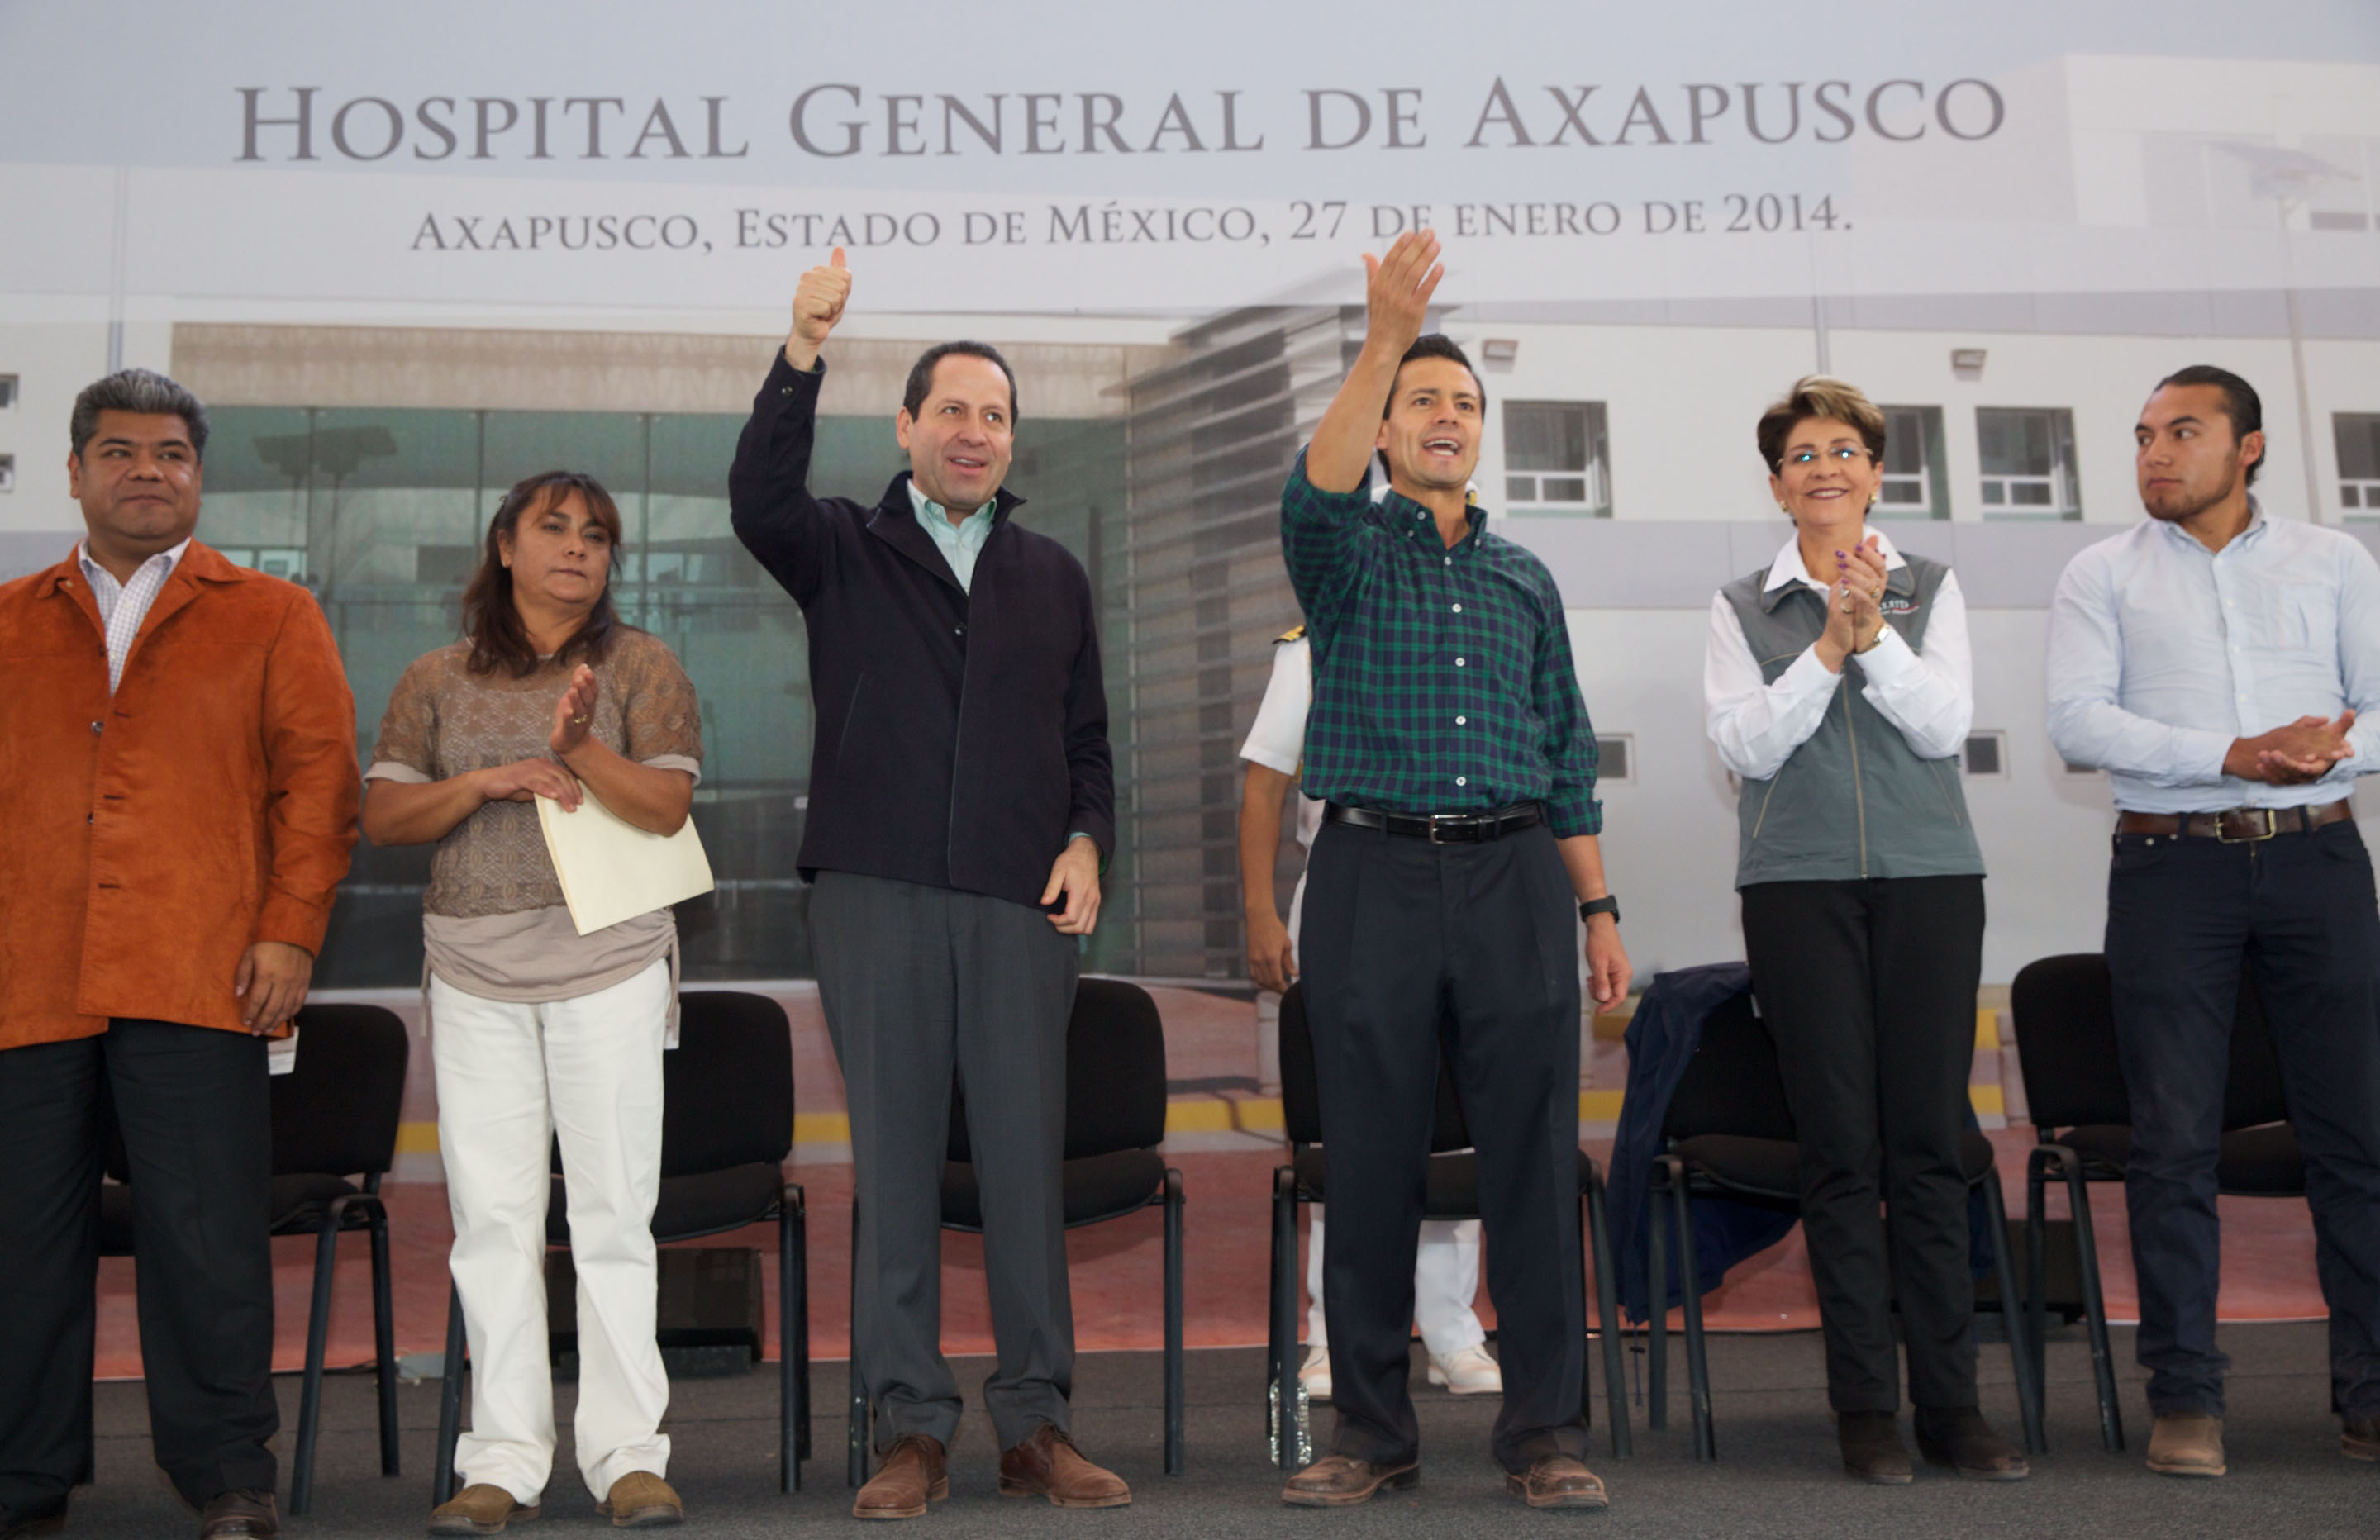 Inauguracin del hospital general de axapusco estado de mxico 12181103003 o